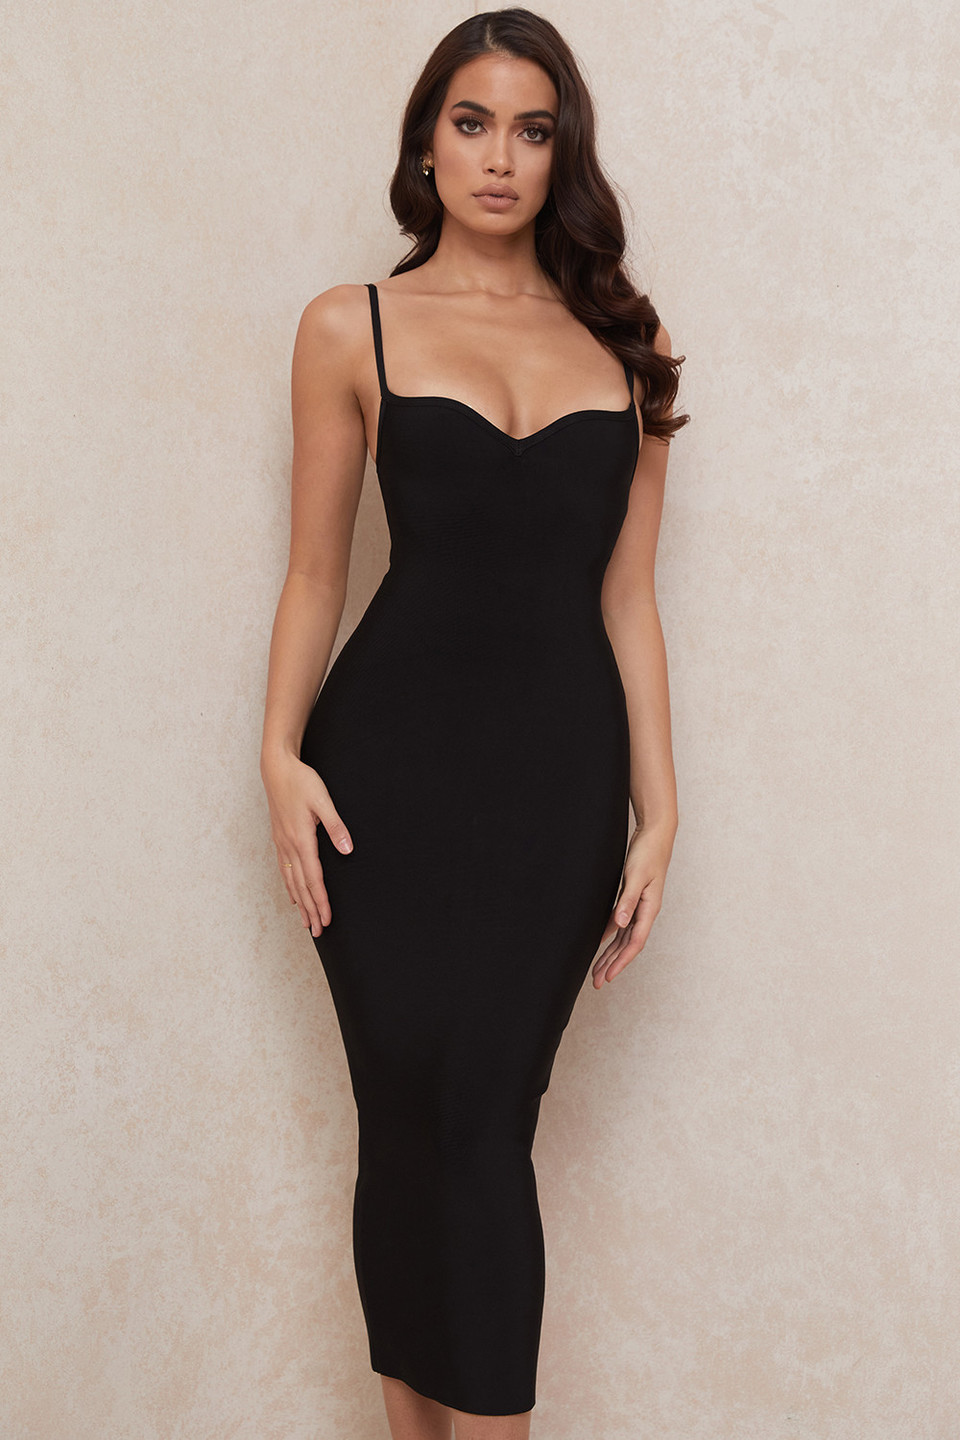 Domenica Black Sweetheart Neckline Bandage Dress